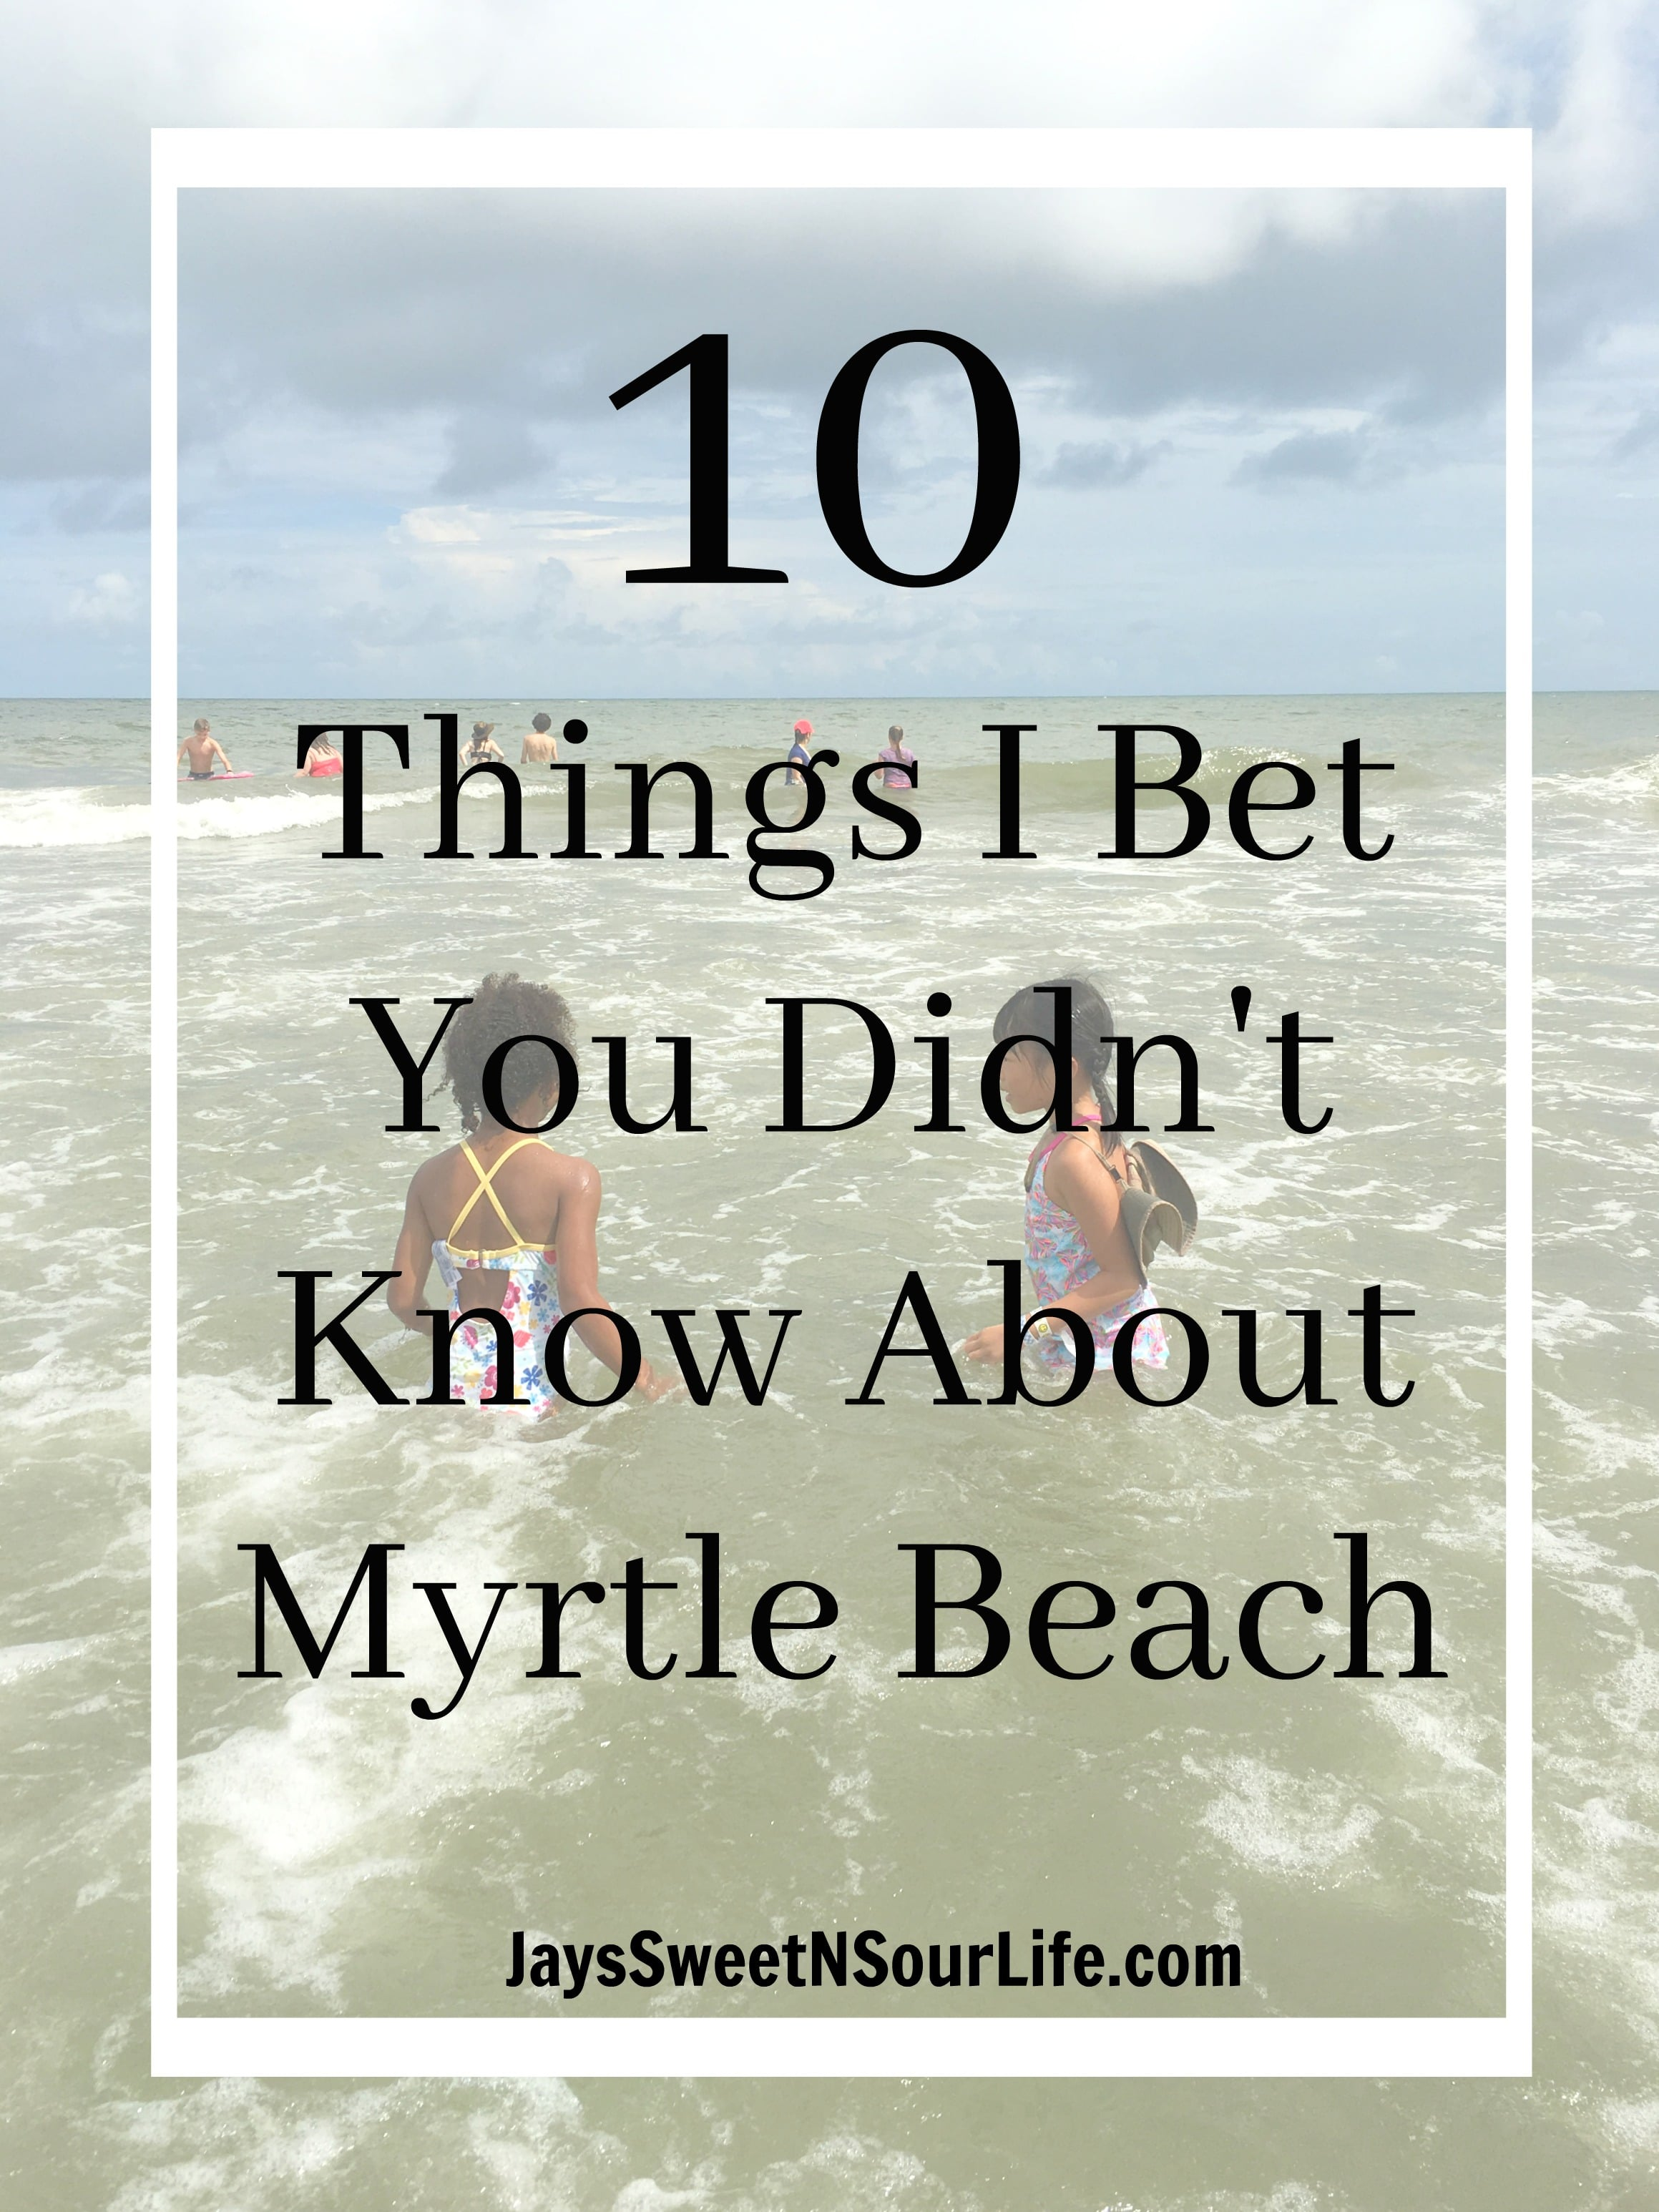 10 Things I Bet You Didn't Know About Myrtle Beach